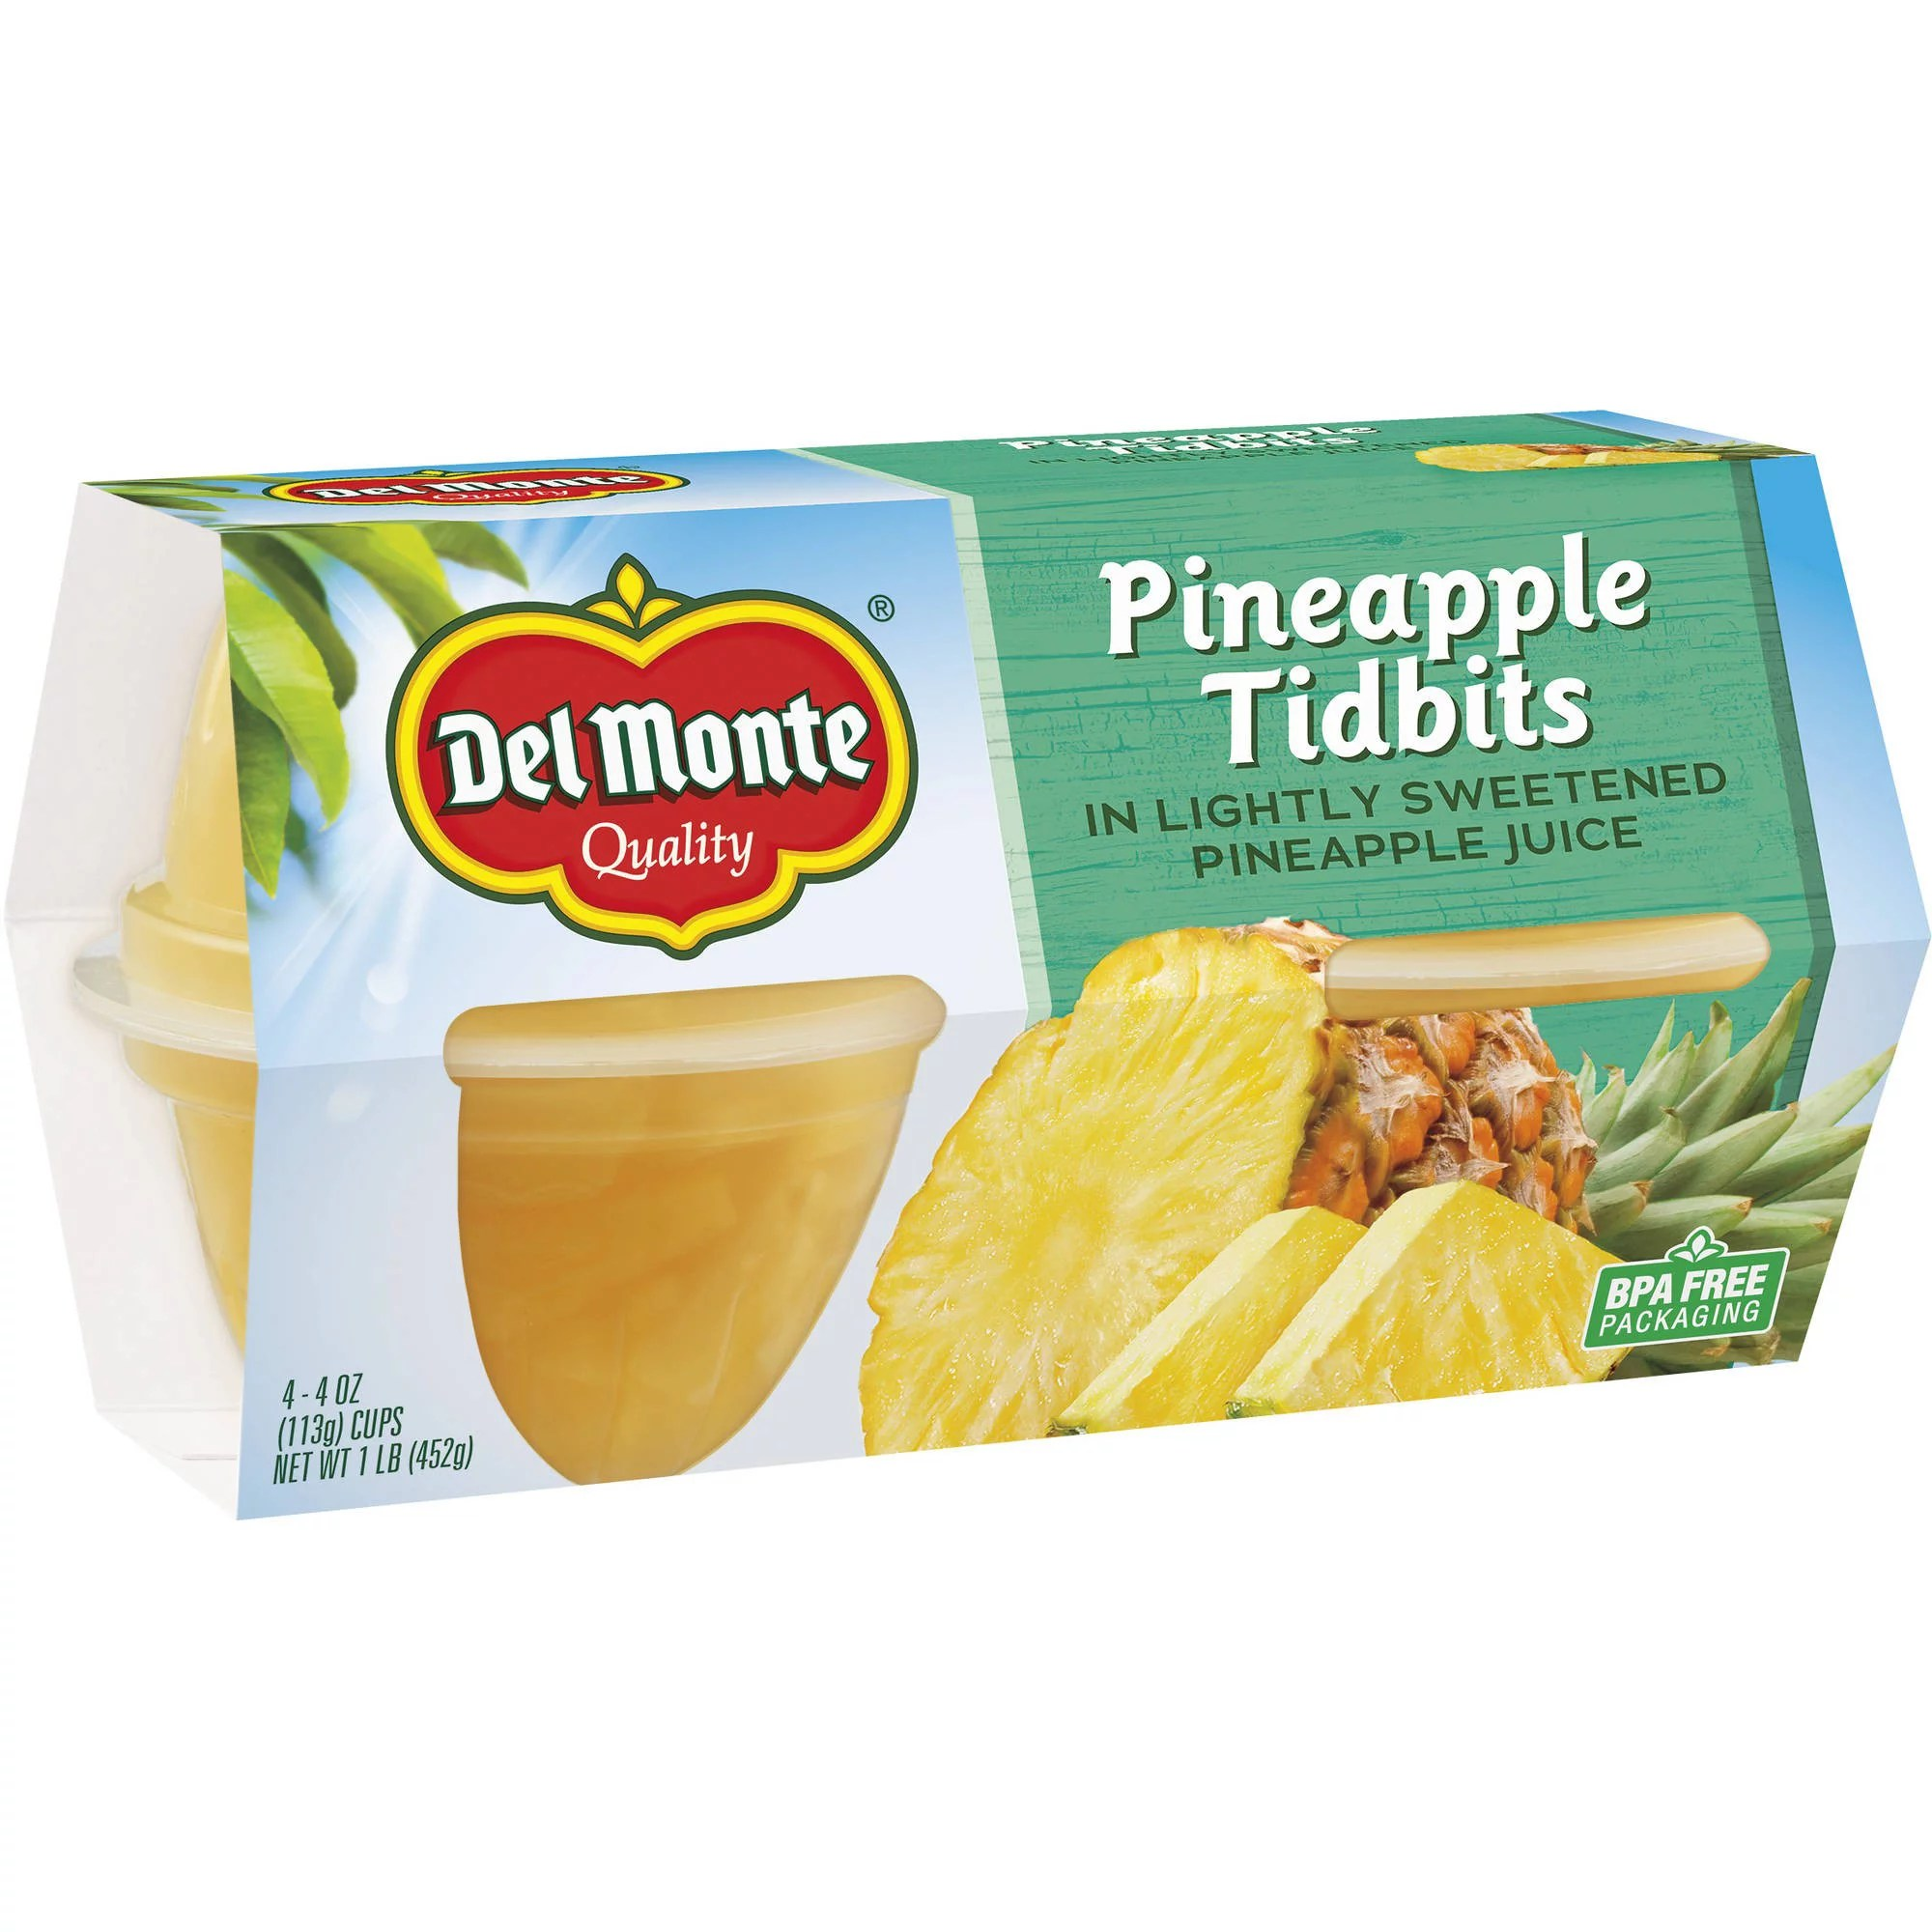 (4 Cups) Del Monte Pineapple Tidbits in Lightly Sweetened ...